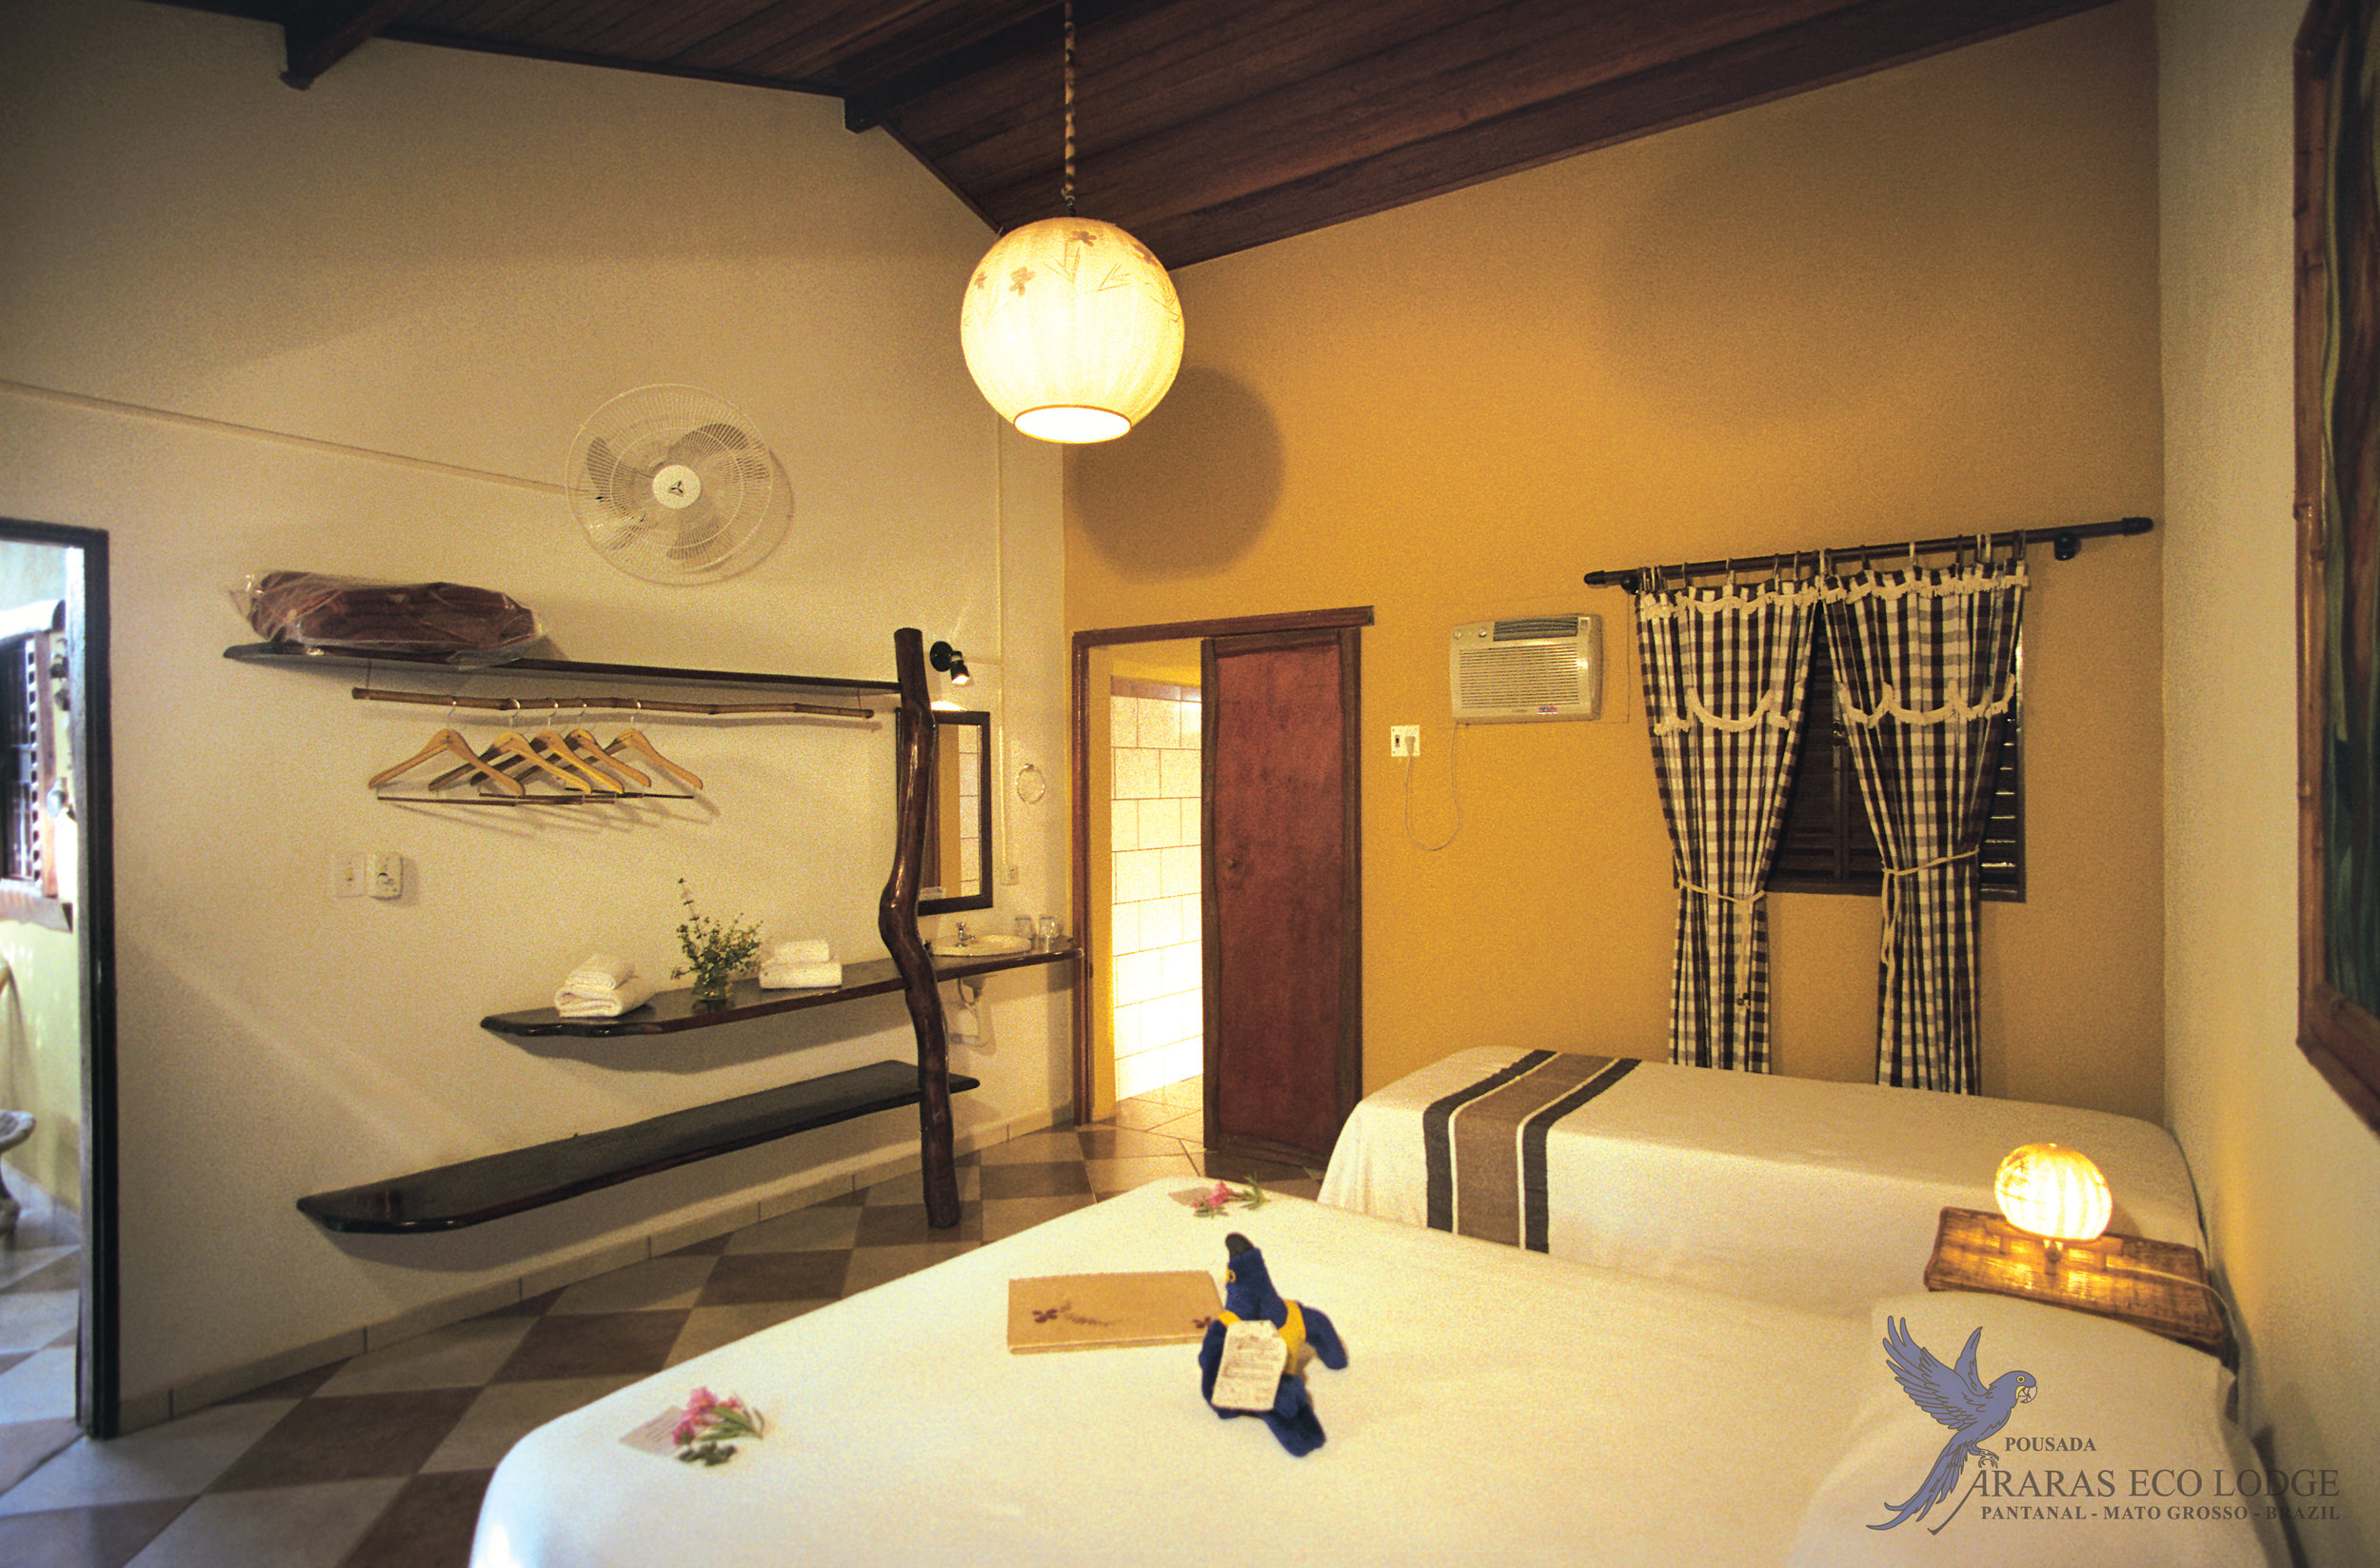 Accommodations at Araras EcoLodge, Pantanal